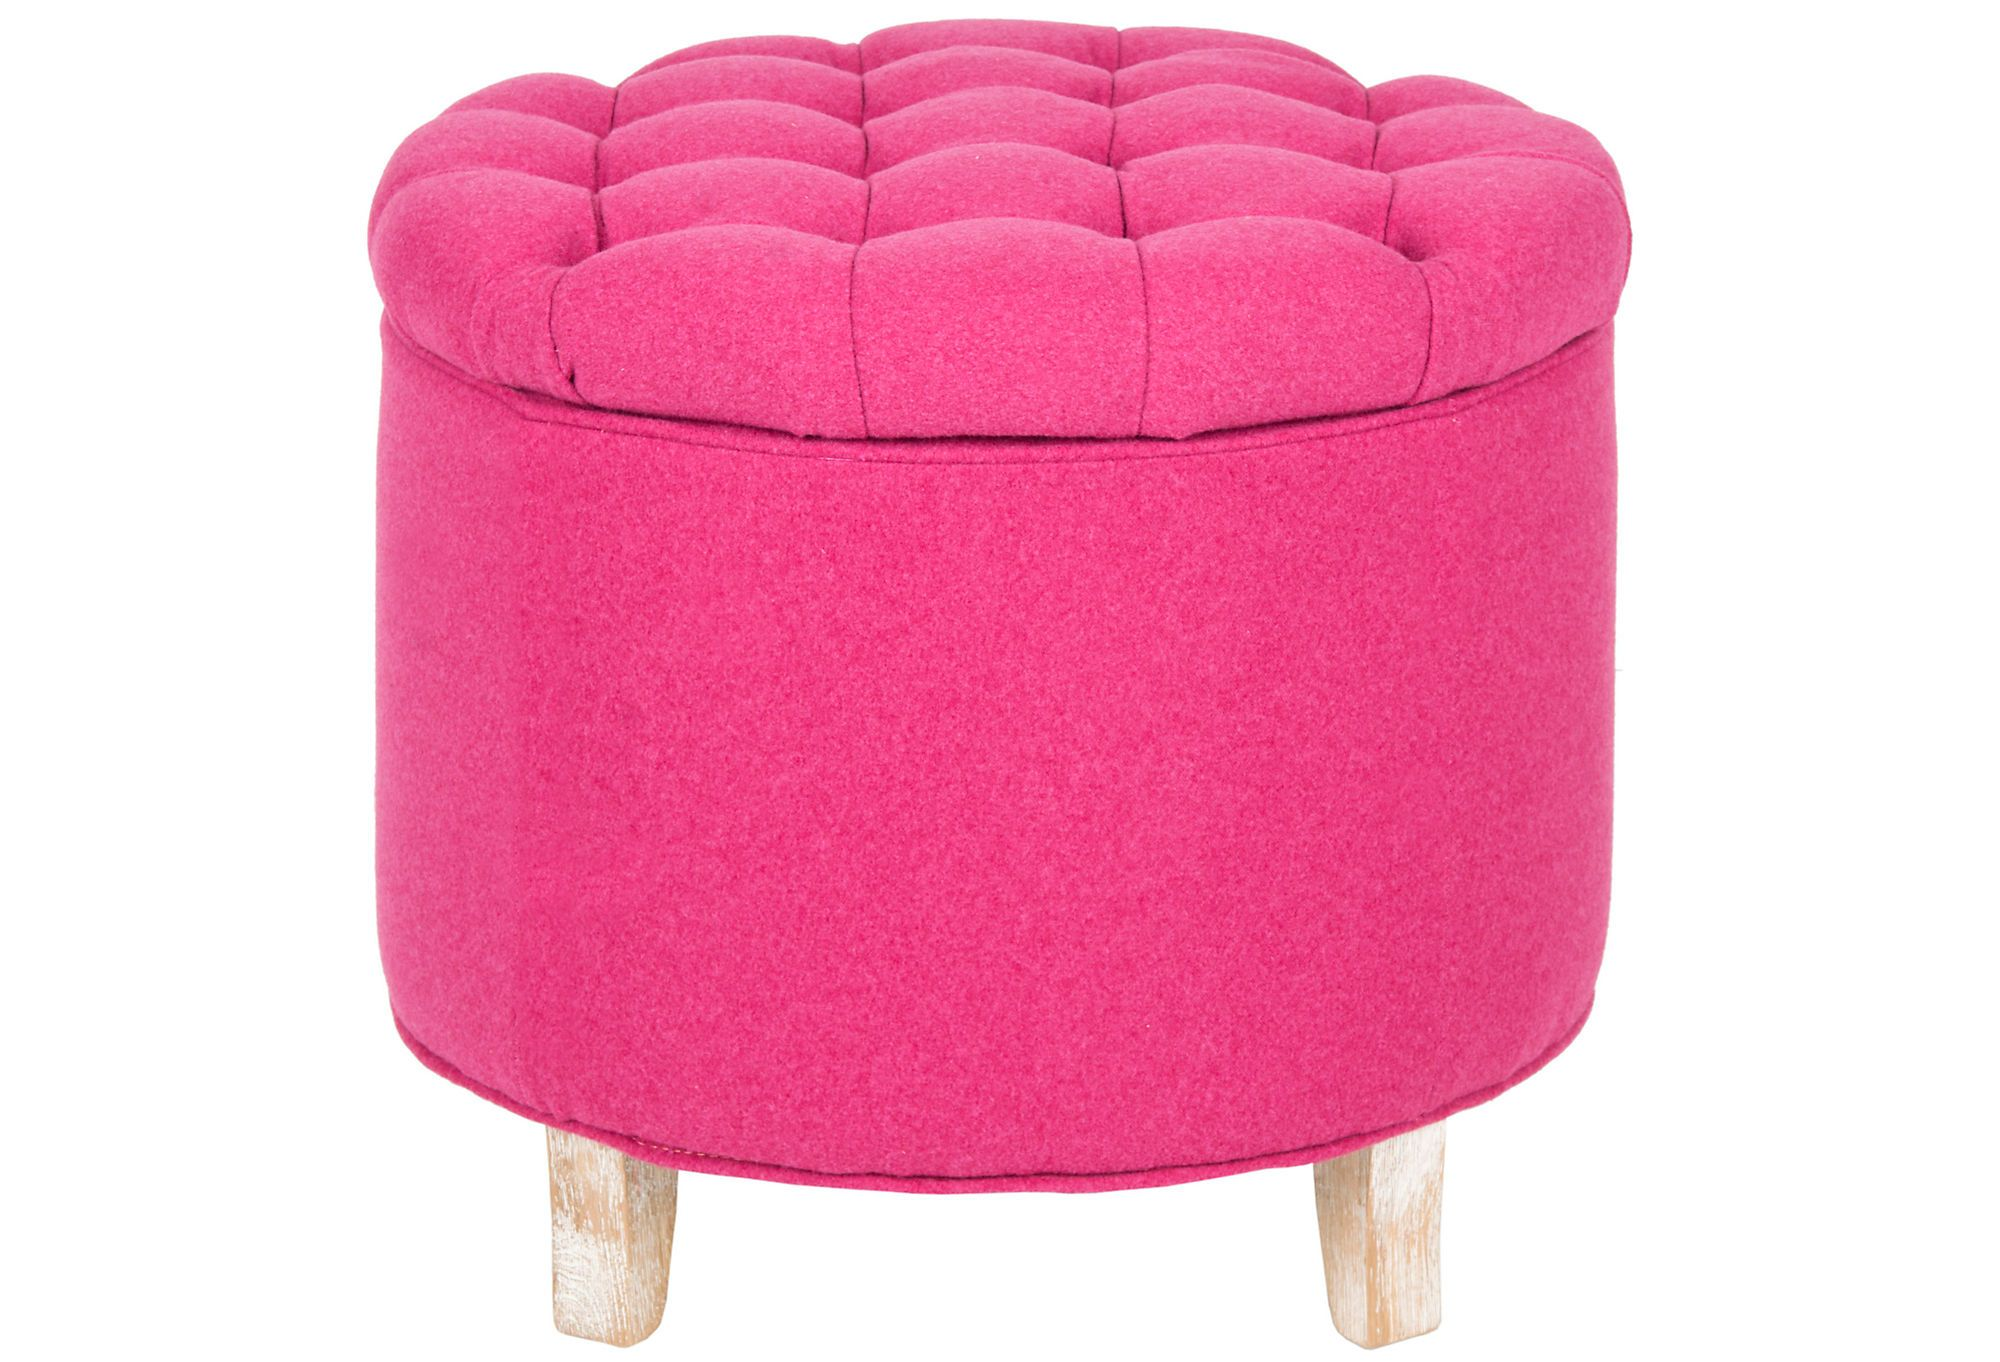 Arabella Tufted Storage Ottoman Pink Colors That Complement One Kings Lane